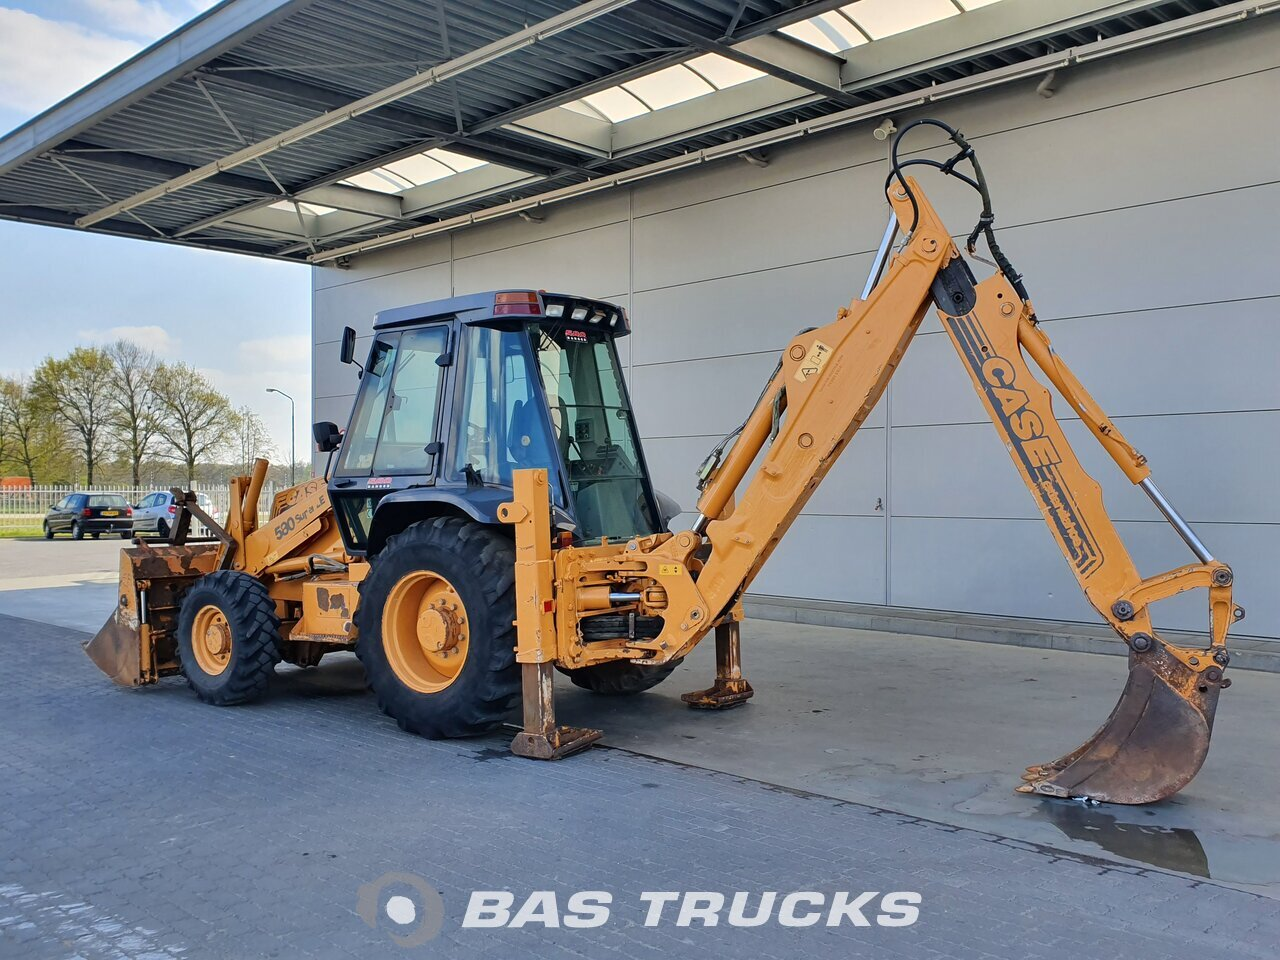 For sale at BAS Trucks: Case 580 SLE 4X4 01/1999